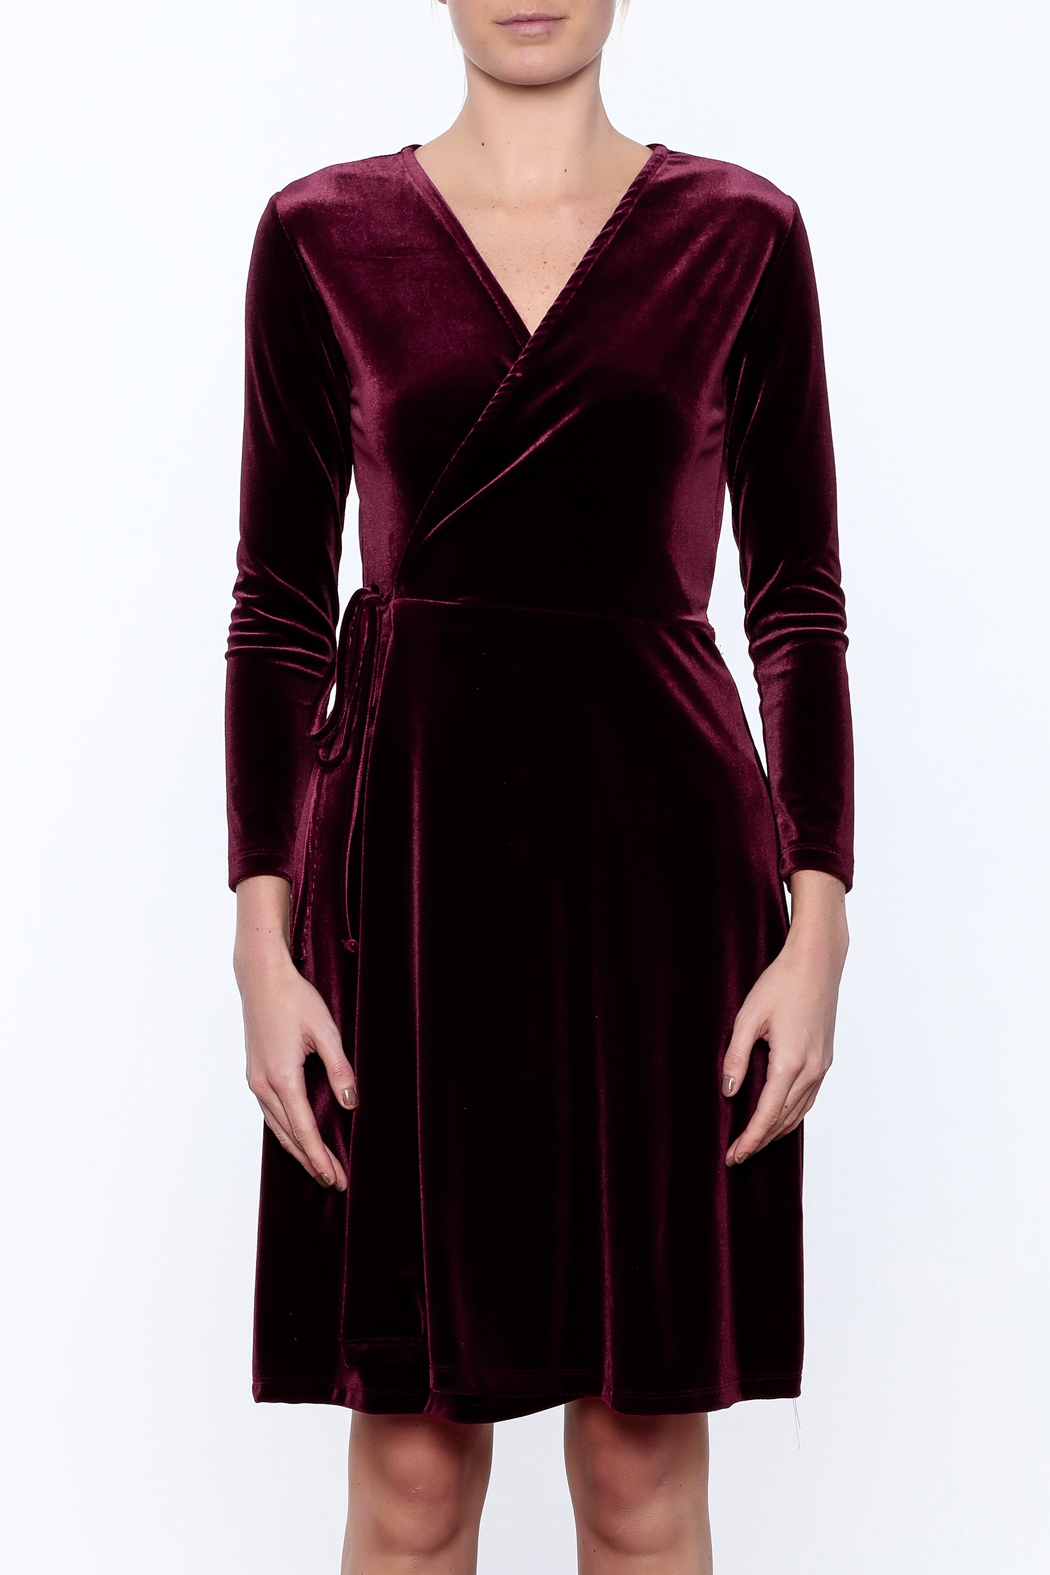 Pinkyotto The Velvet Rope Dresses - Side Cropped Image